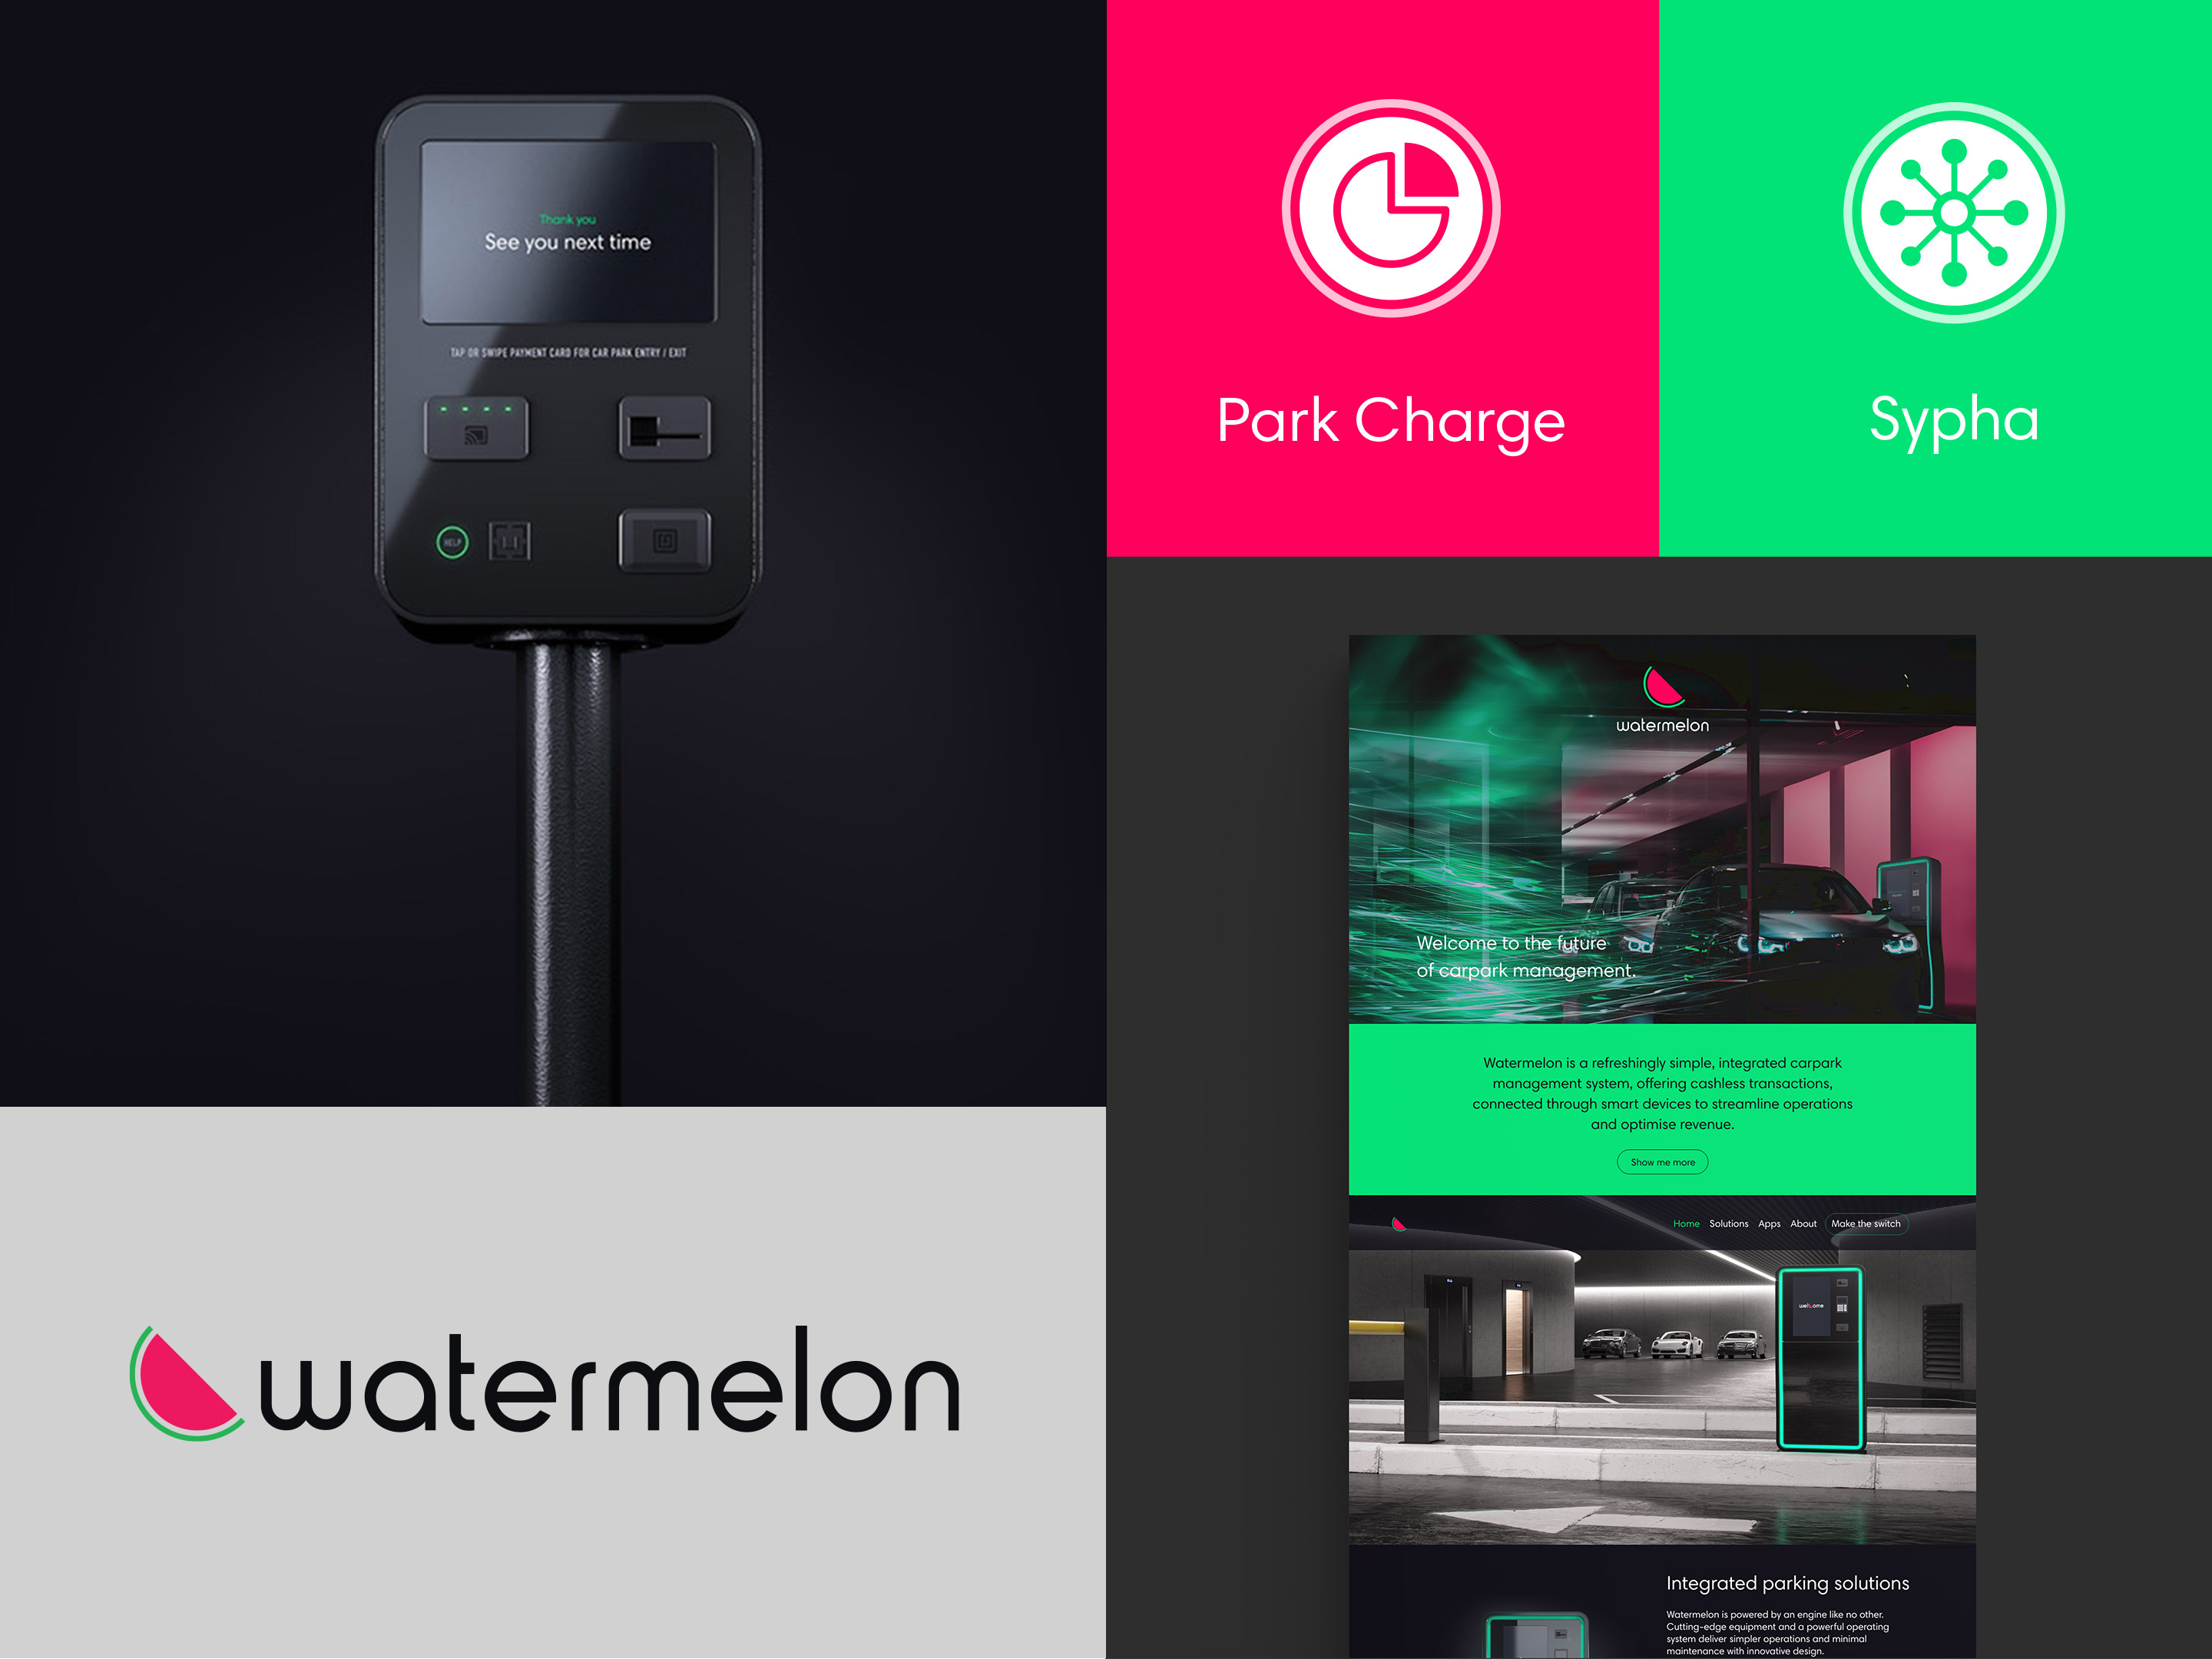 Watermelon. Brand overview with logo, iconography and interface designs.